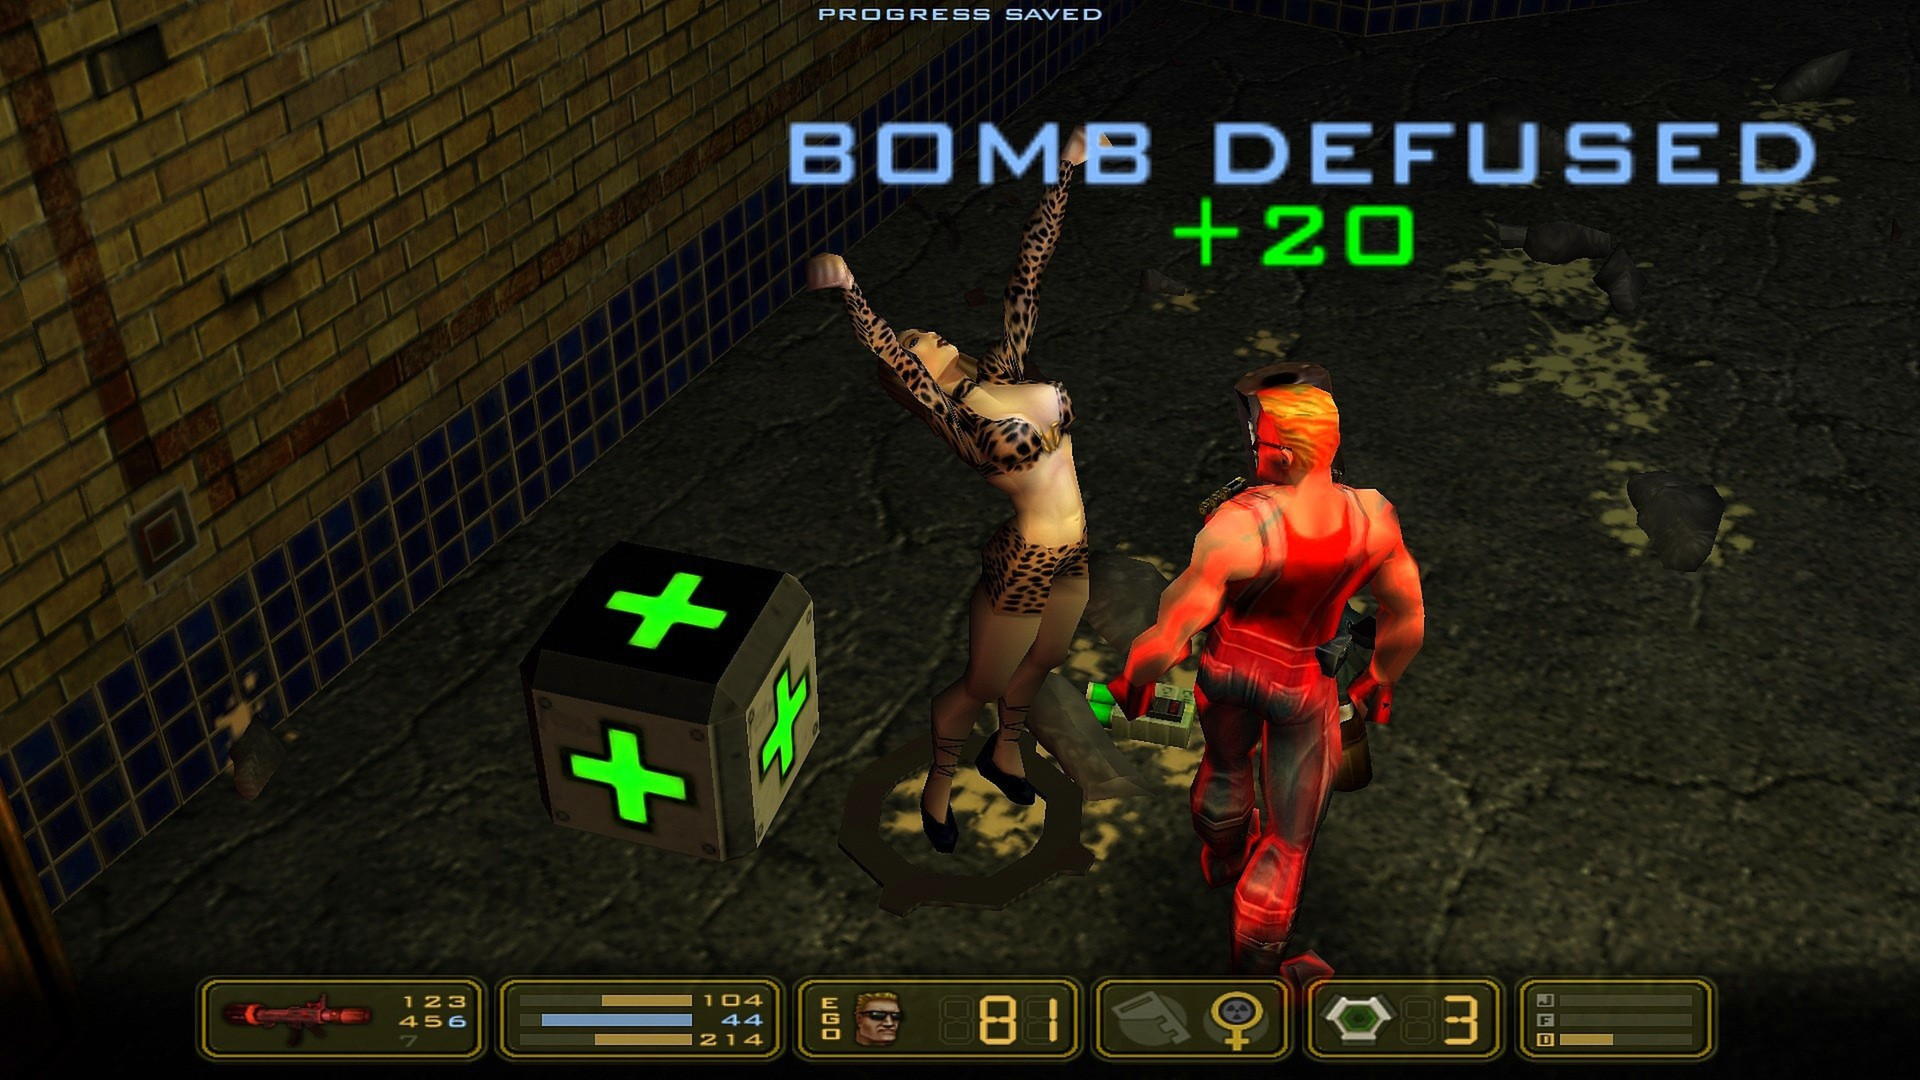 duke nukem manhattan project d realms firepower matters view image